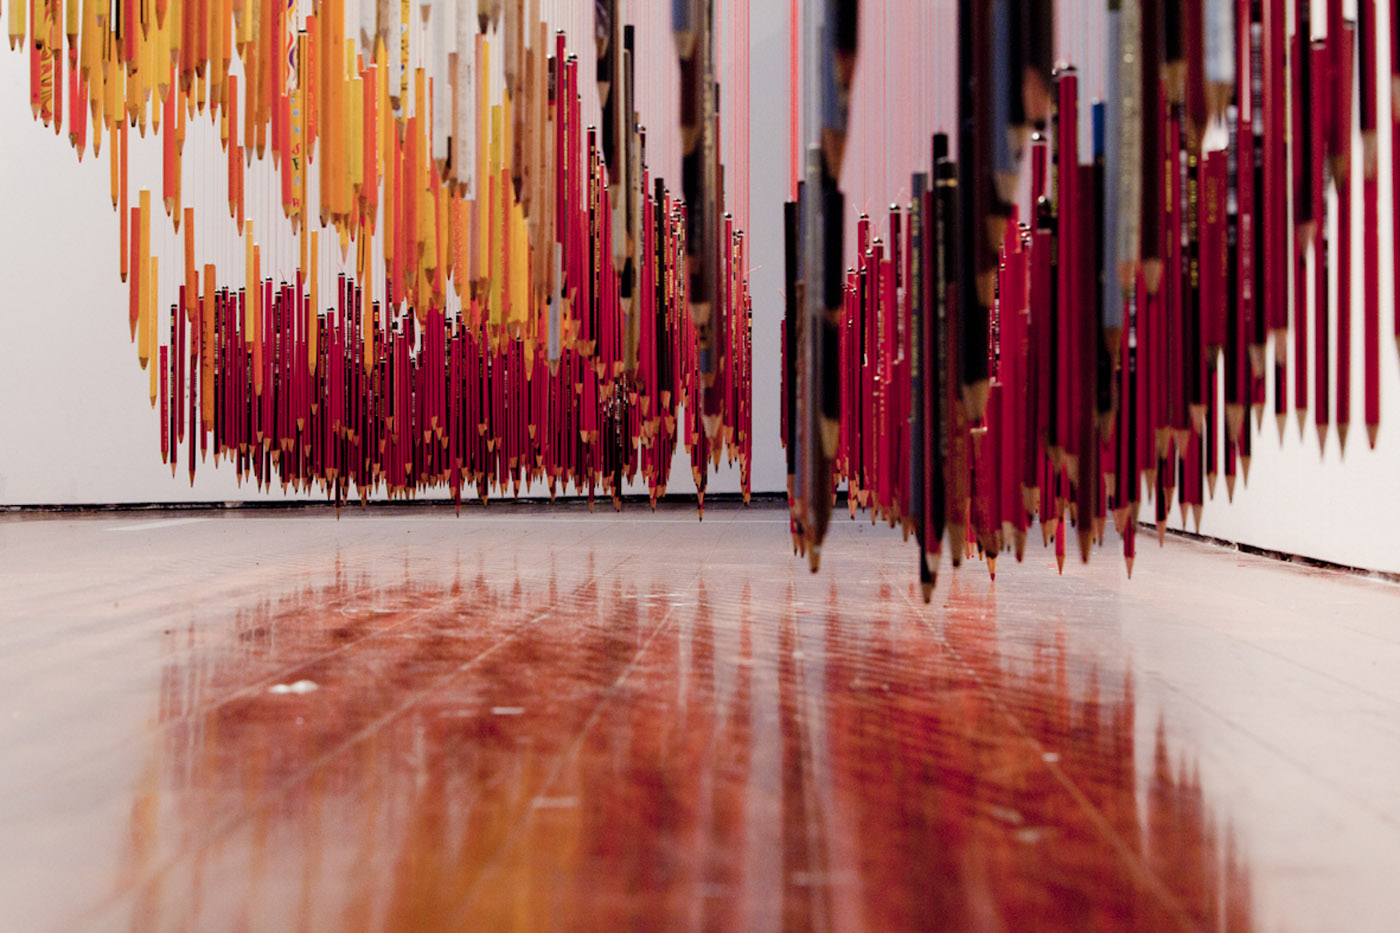 Much Lead installation by Sydney award winning architecture office Sam Crawford Architects. Various Farb riese coloured pencils donated by artists, designers, carpenters, schoolchildren.